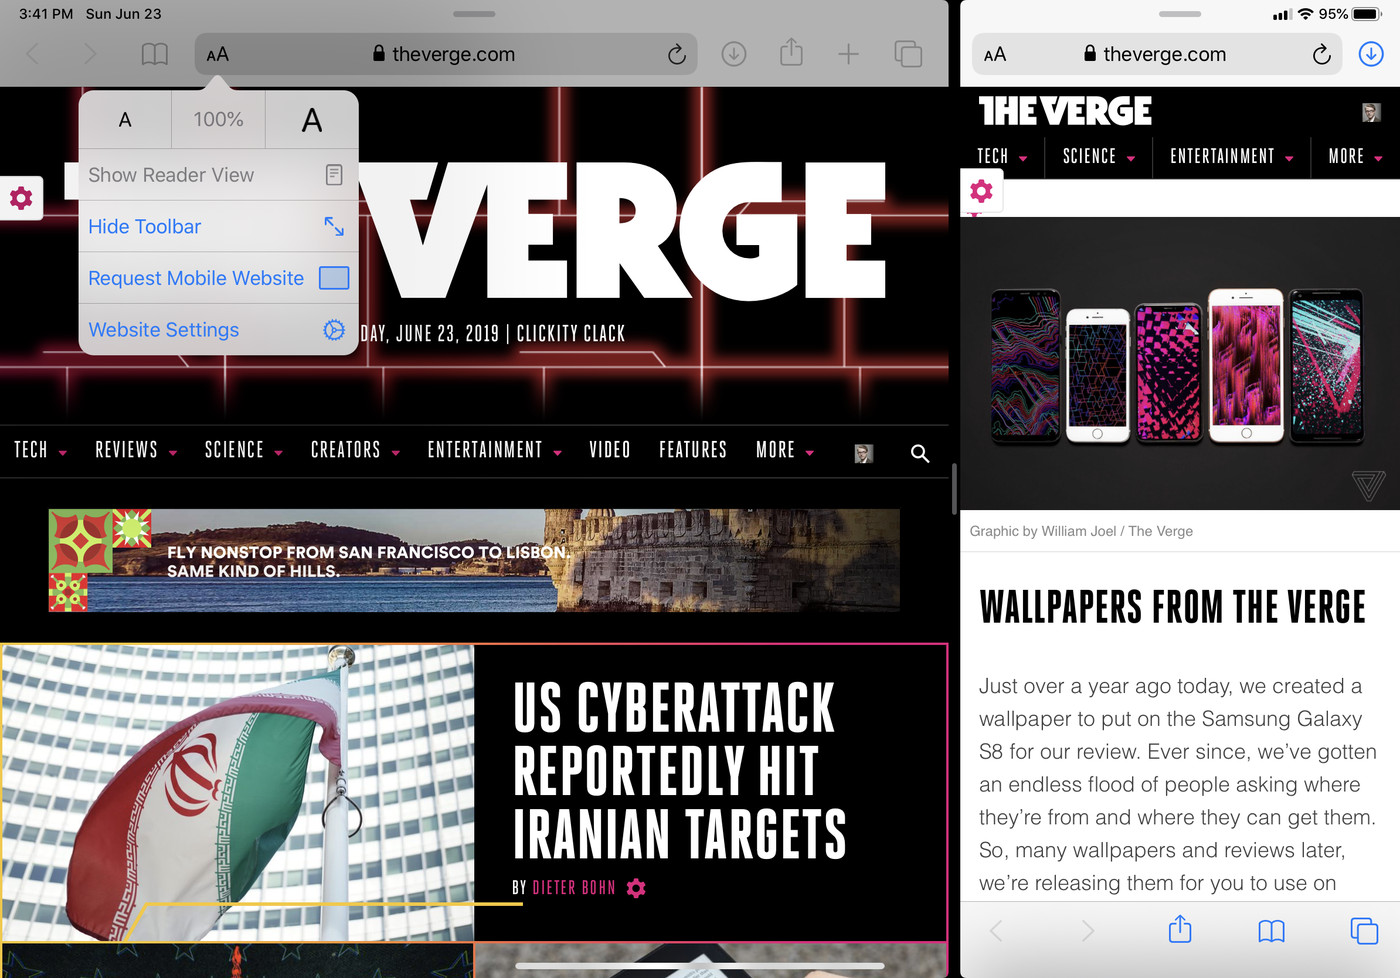 iPadOS public beta preview: top features - The Verge